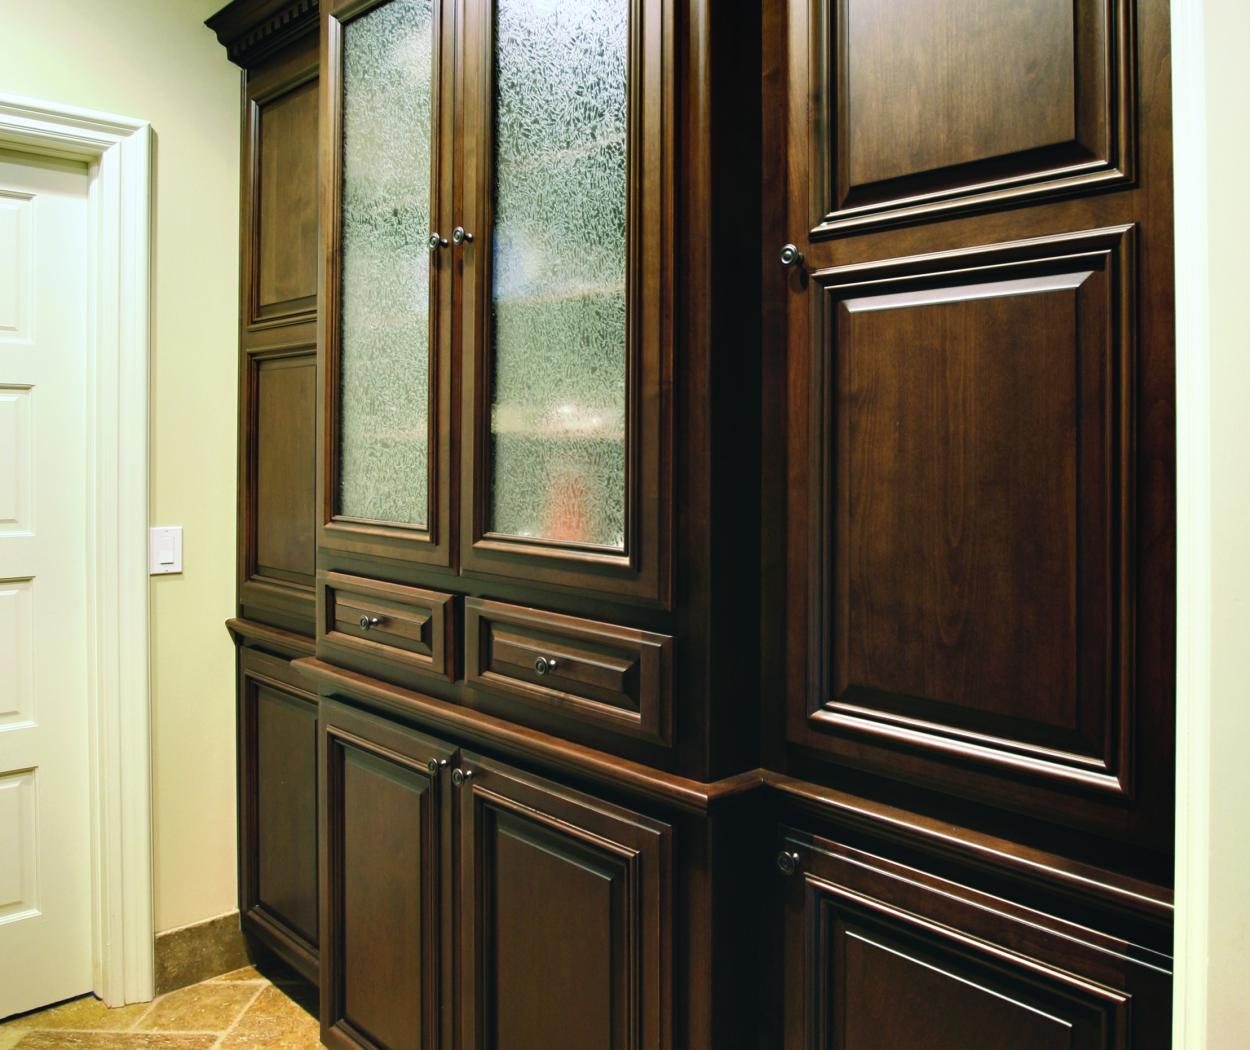 Traditional Chocolate Stained Built-In with Decorative Glass Doors and Oil Rubbed Bronze Hardware